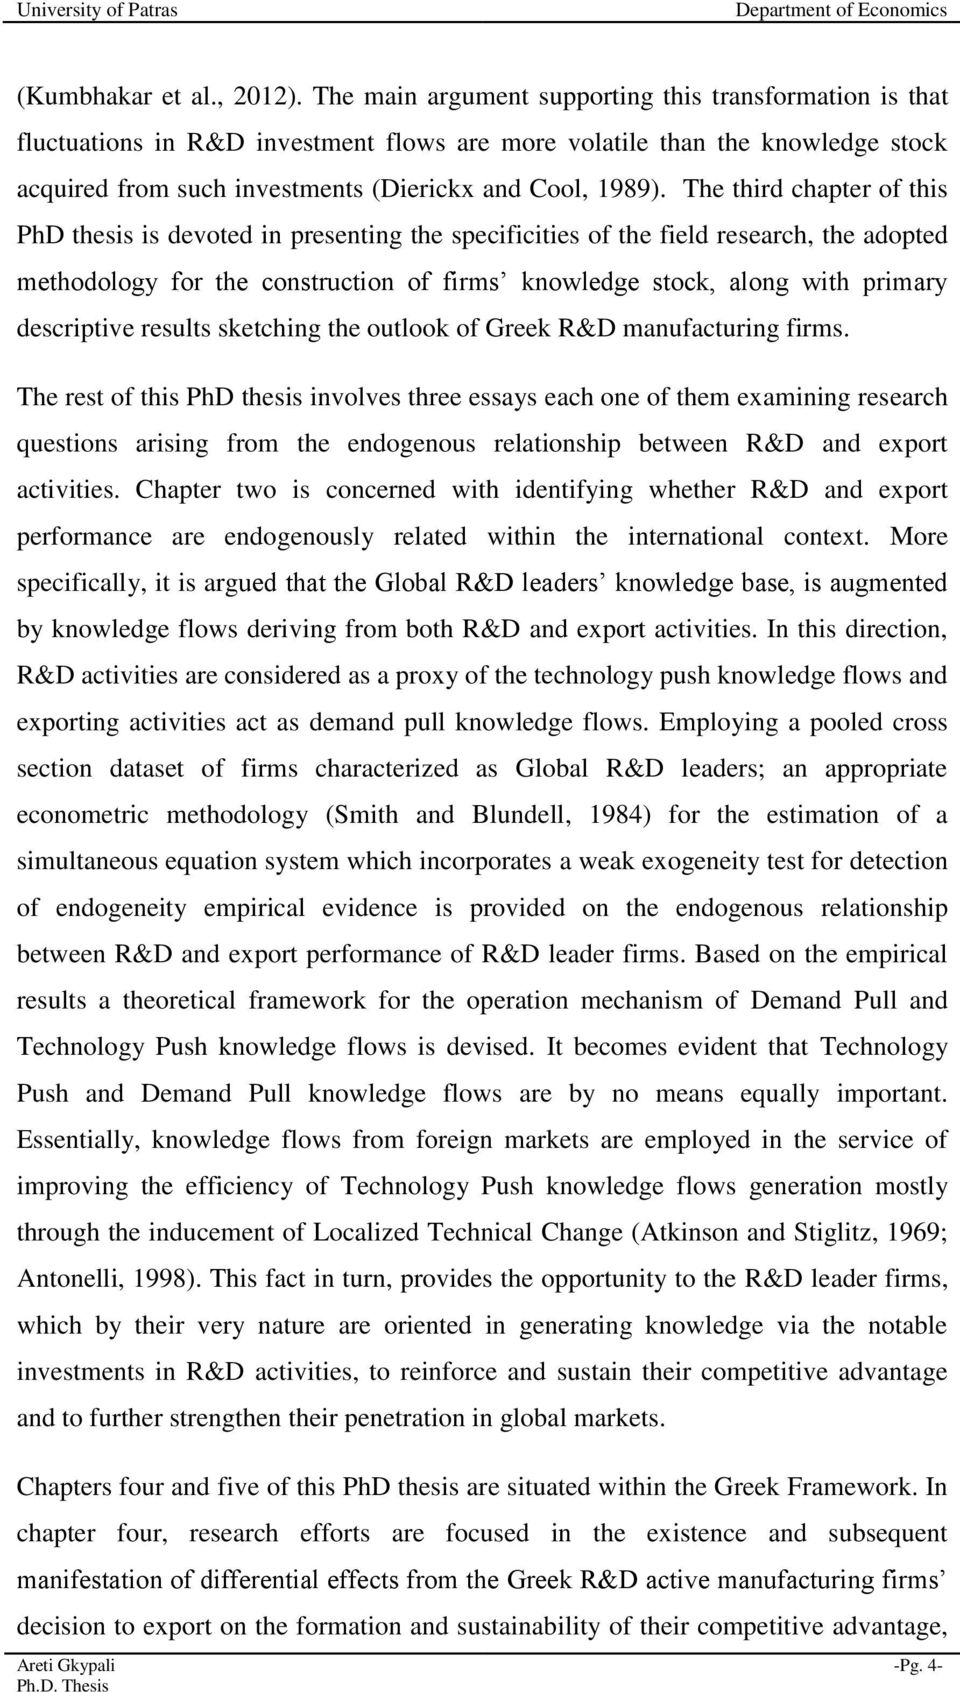 The third chapter of this PhD thesis is devoted in presenting the specificities of the field research, the adopted methodology for the construction of firms knowledge stock, along with primary